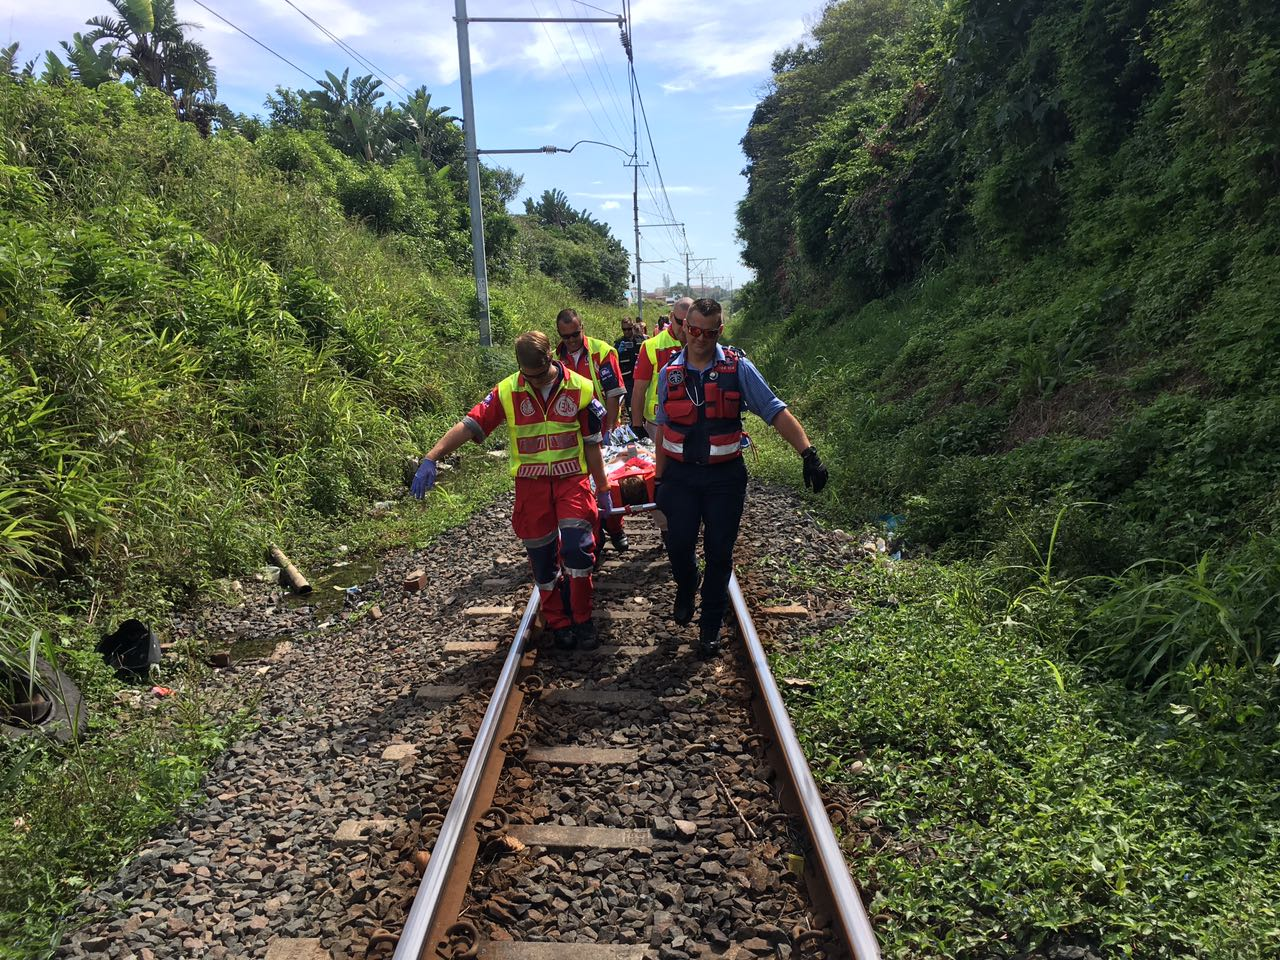 Woman injured after being hit by train close to the Winklespruit train station in Amanzimtoti